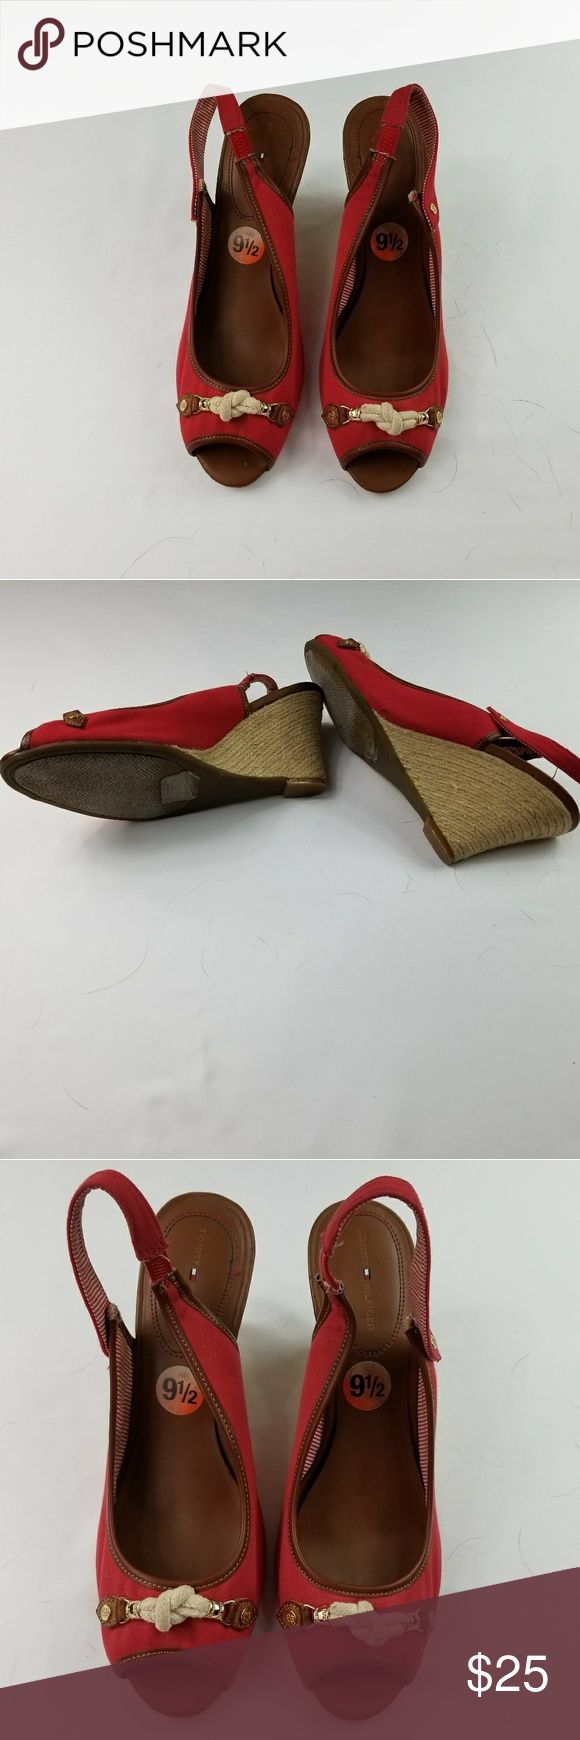 Tommy Hilfiger Nautical Wedge Sandals Tommy Hilfiger Nautical Wedge Sandals. EUC. Very comfortable.  Great addition to your spring and summer wardrobe. Tommy Hilfiger Shoes Sandals